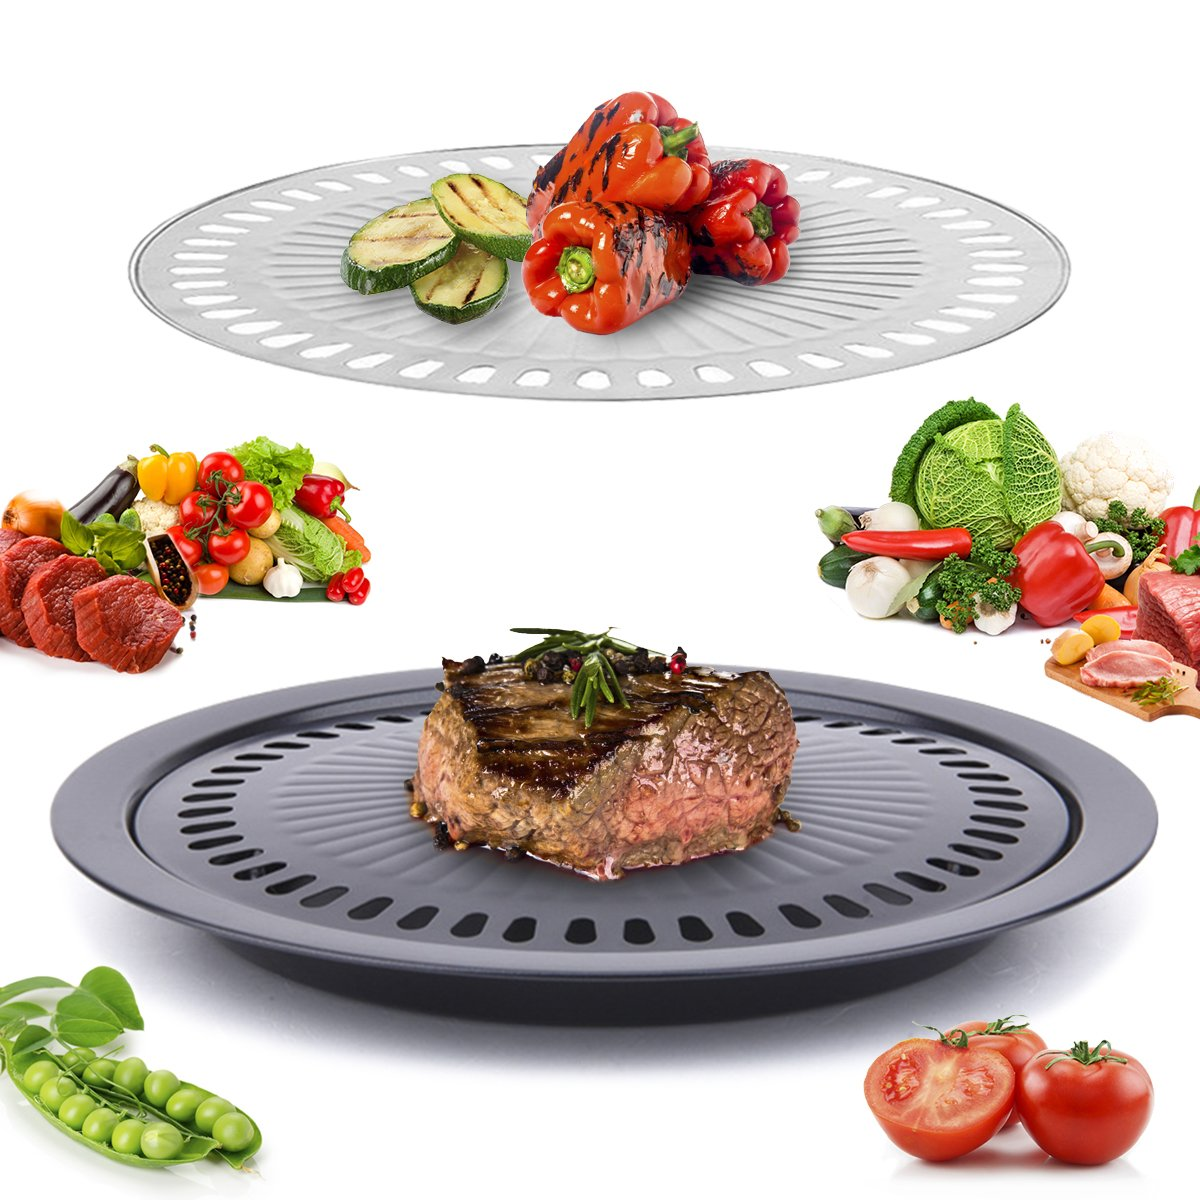 Janolia Korean Stovetop, Stainless Steel Non-Stick Smokeless Roasting Round Barbecue Grill Pan for Indoor Outdoor BBQ with 2 Pcs Roasting Pans for Cooking Meat and Vegetable Separately